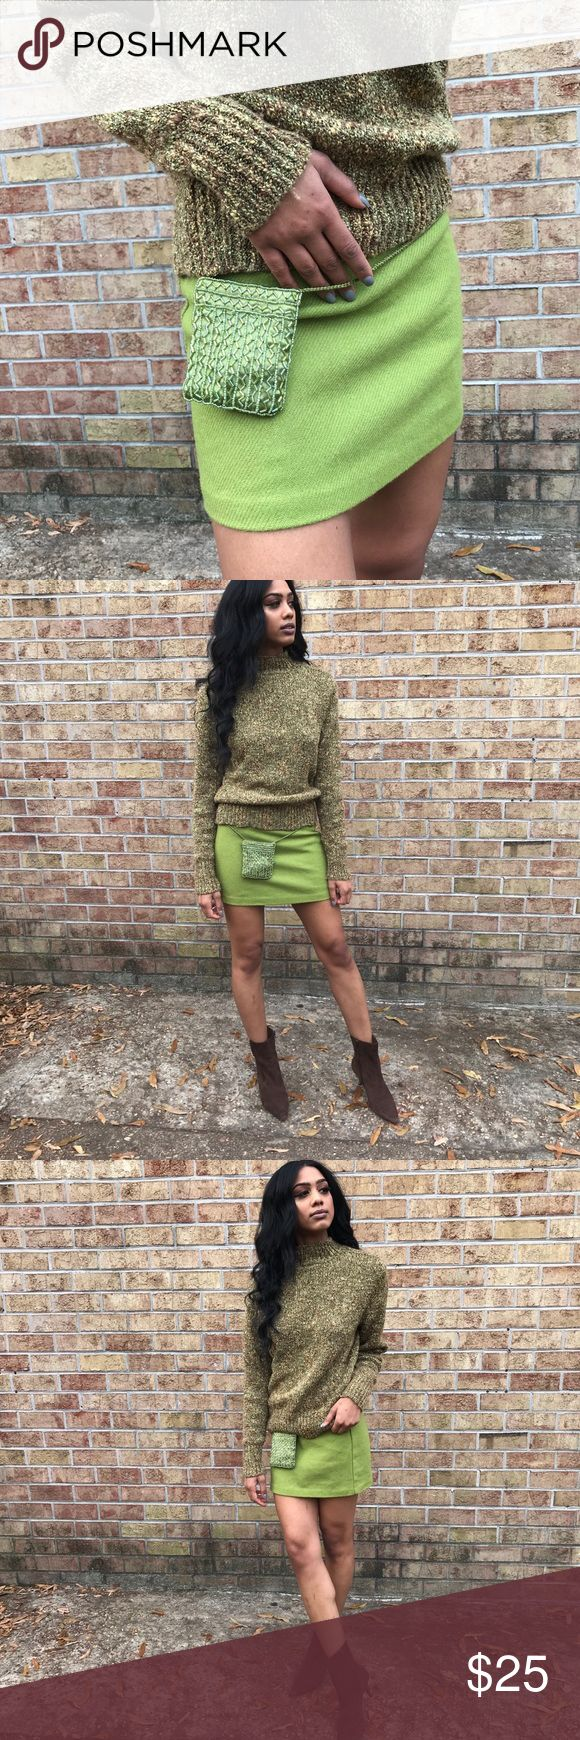 United Colors of Benetton Lime skirt Micro mini, wool knit, vintage Benetton skirt, fits so cute. Model pictured is 2-4. Vintage Skirts Mini